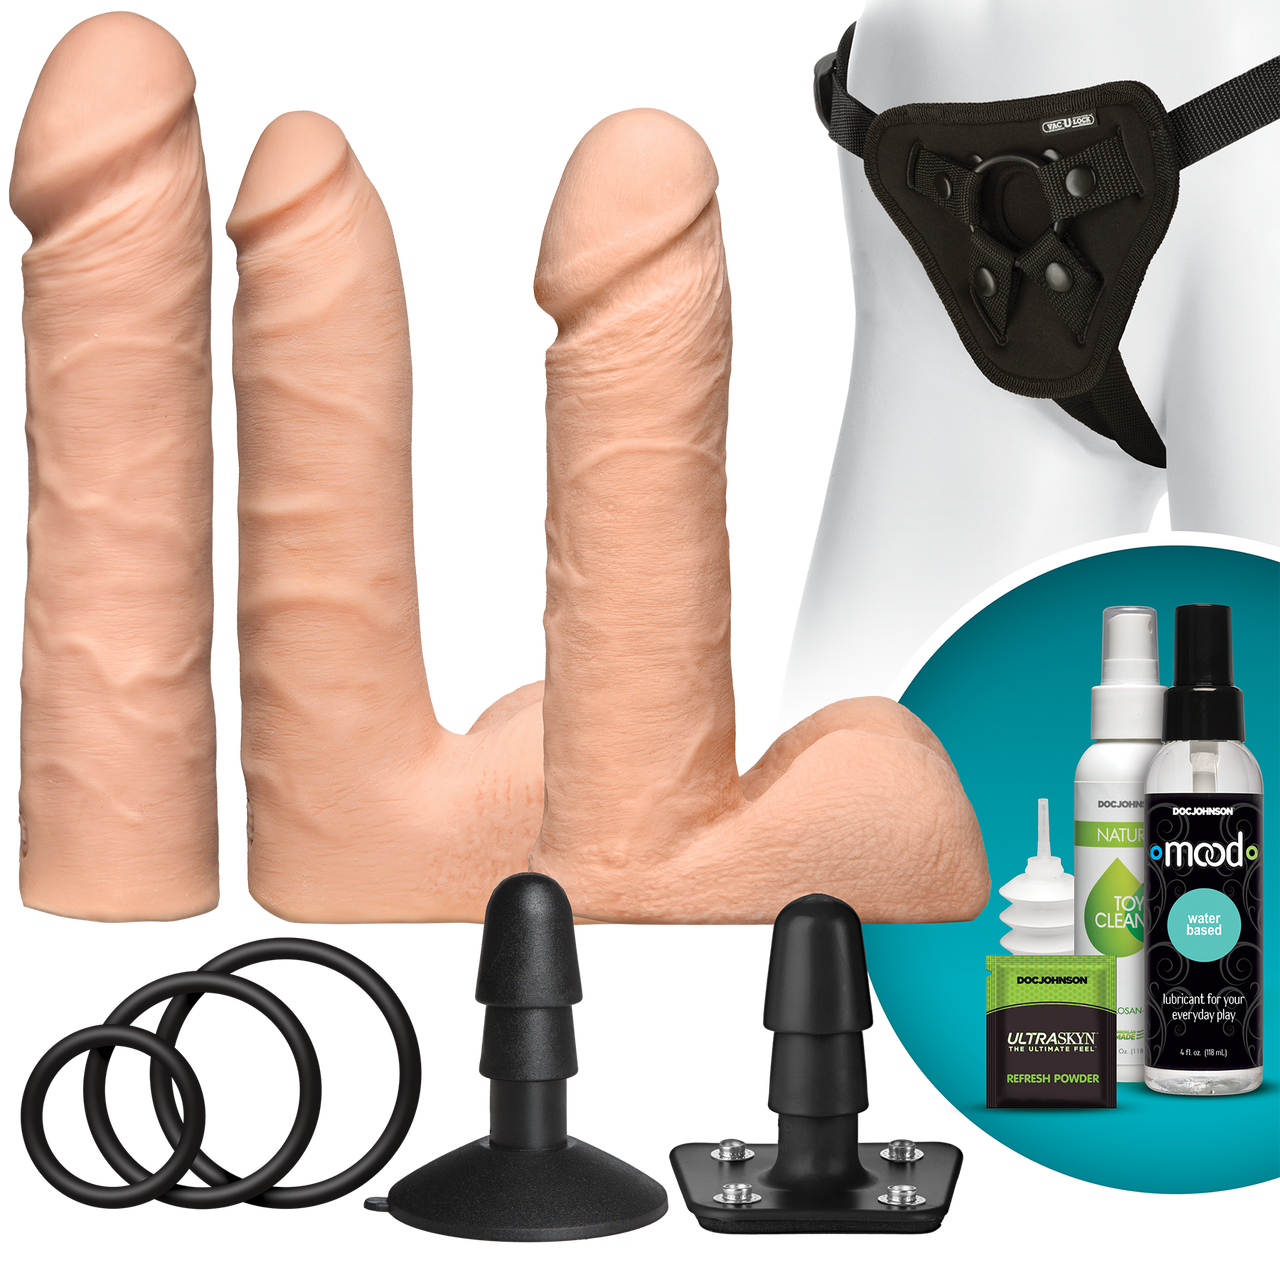 And the double penetration harness and dildo set 7622